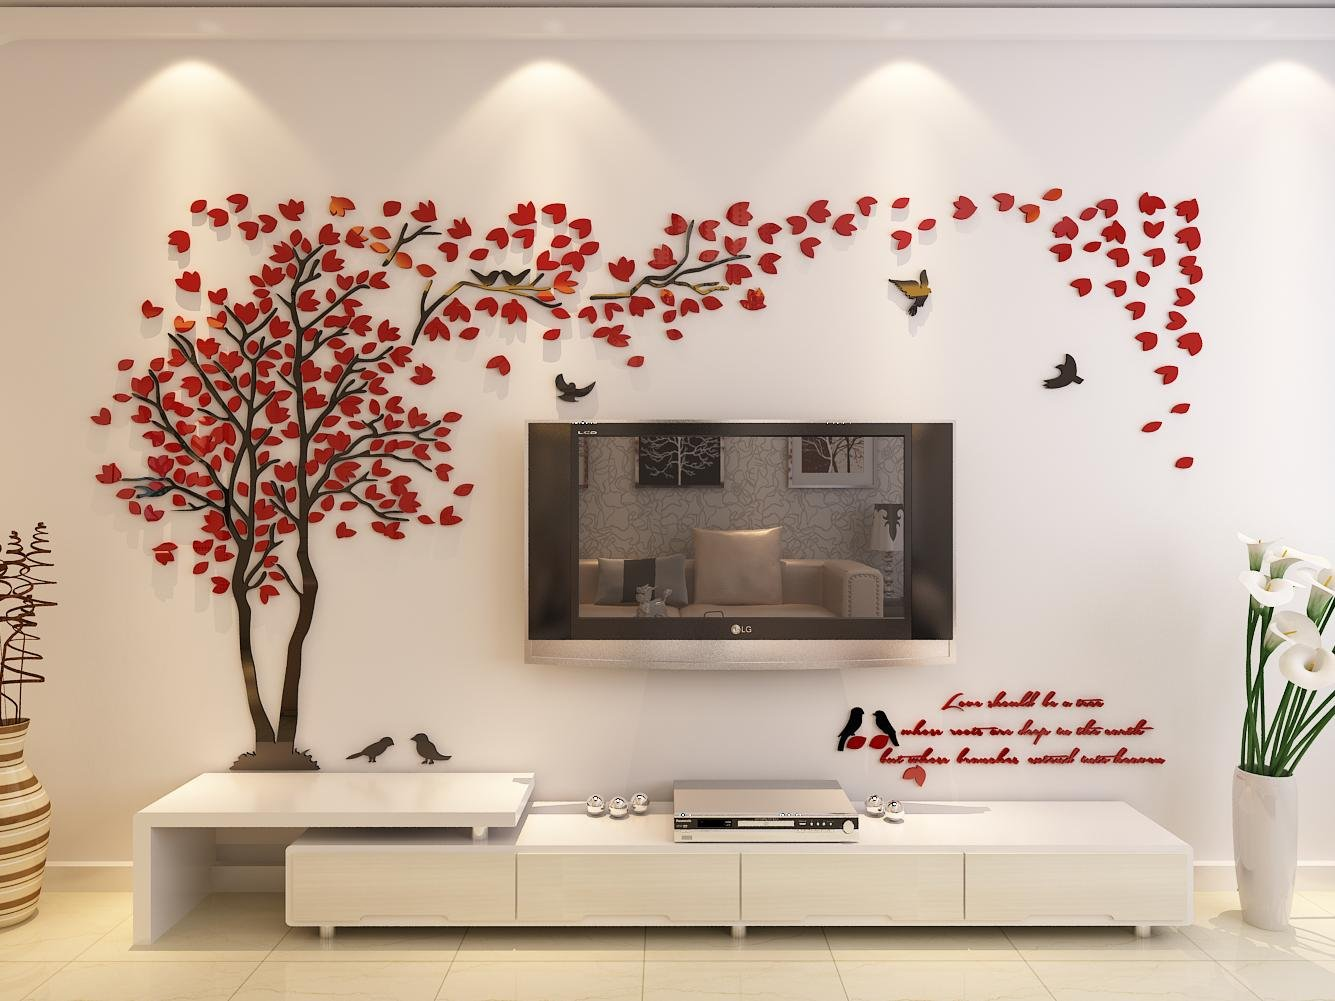 3d Couple Tree Wall Murals for Living Room Bedroom Sofa Backdrop Tv Wall Background, Originality Stickers Gift, DIY Wall Decal Home Decor Art Decorations (Large, Red) by Hermione Baby (Image #2)